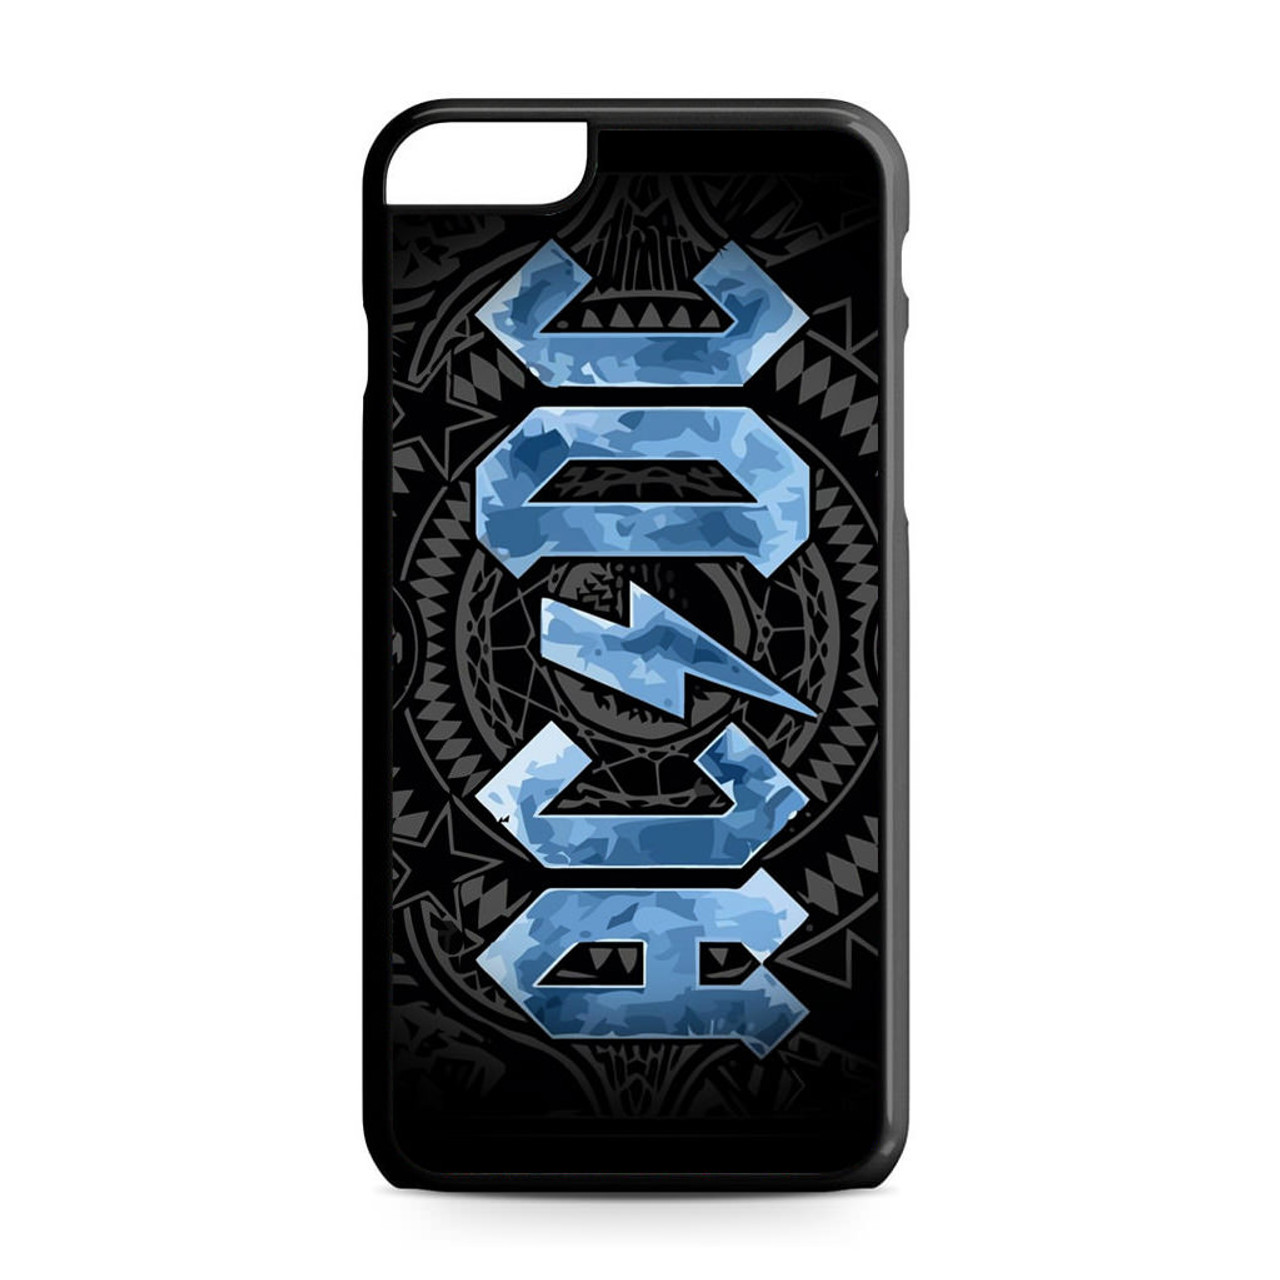 acdc phone case iphone 6 s